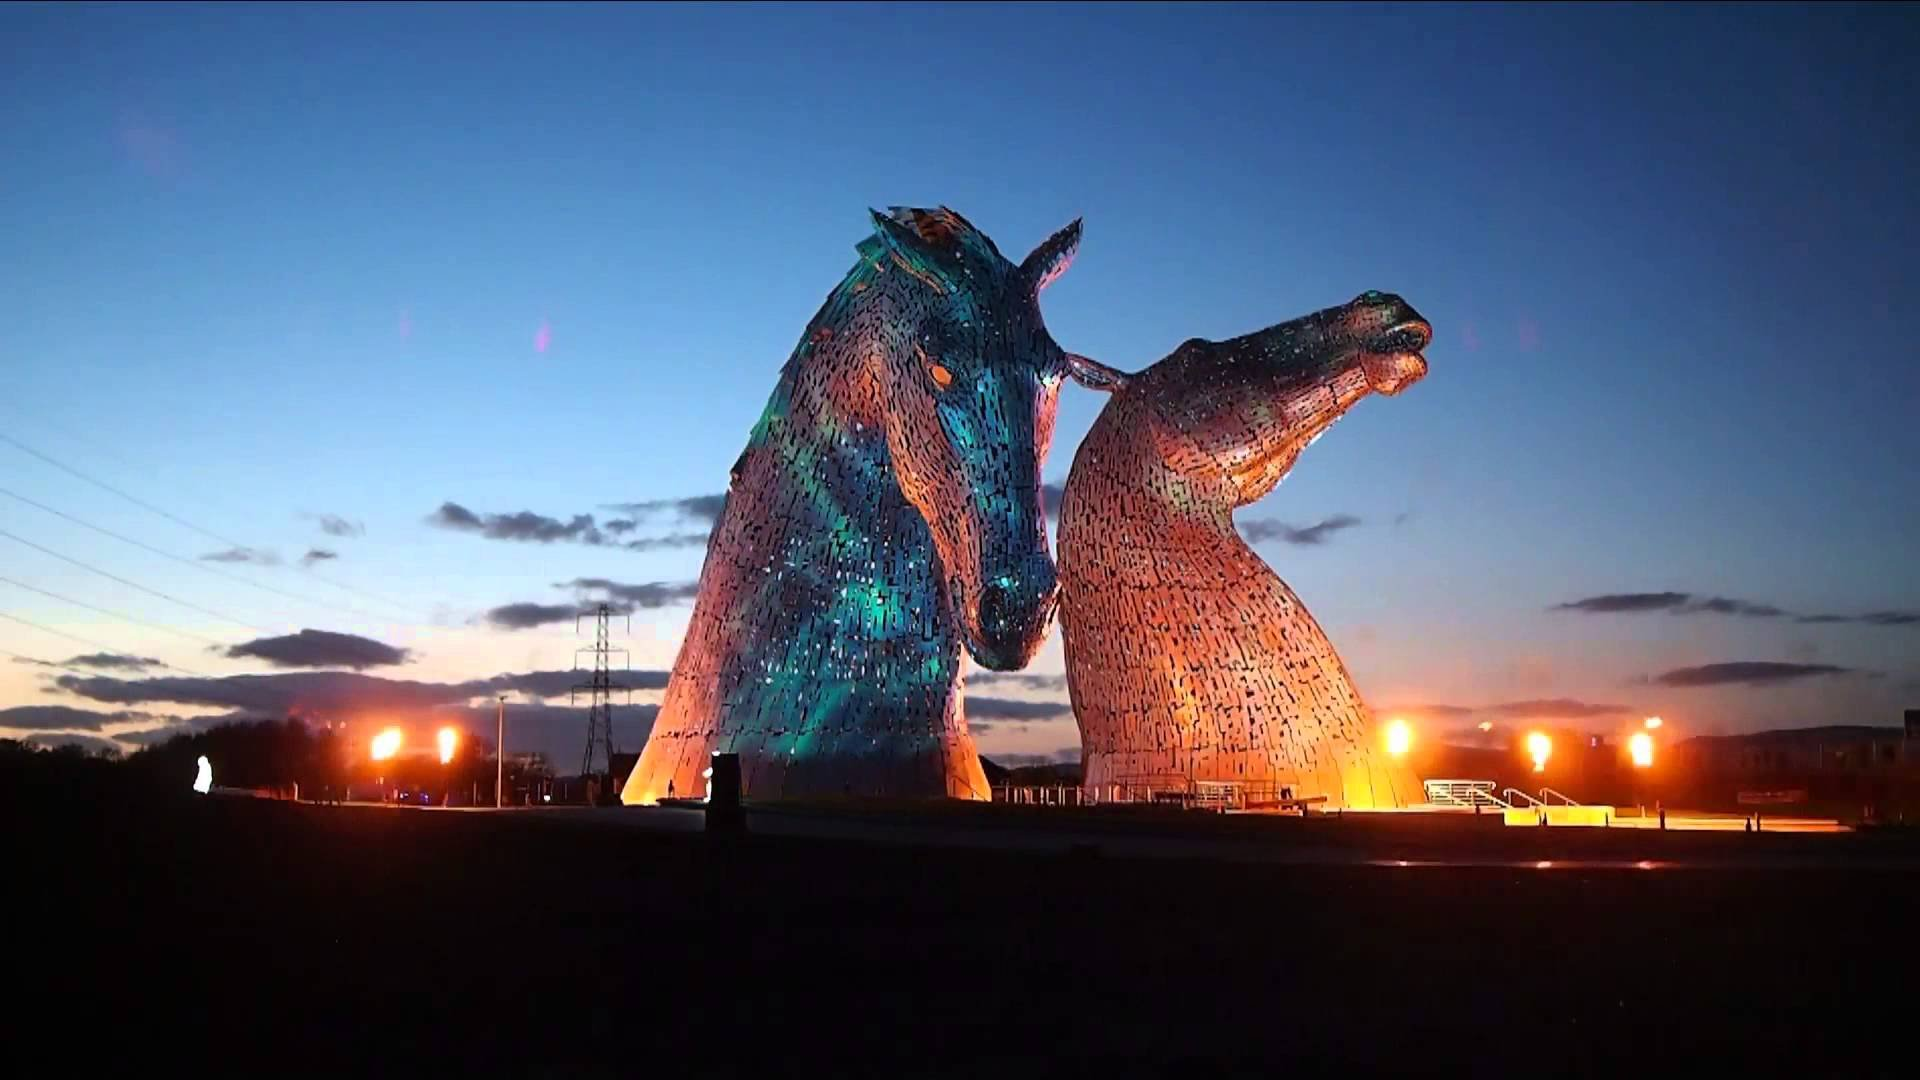 kelpies wallpapers, photos and desktop backgrounds up to 8K [7680x4320 ...